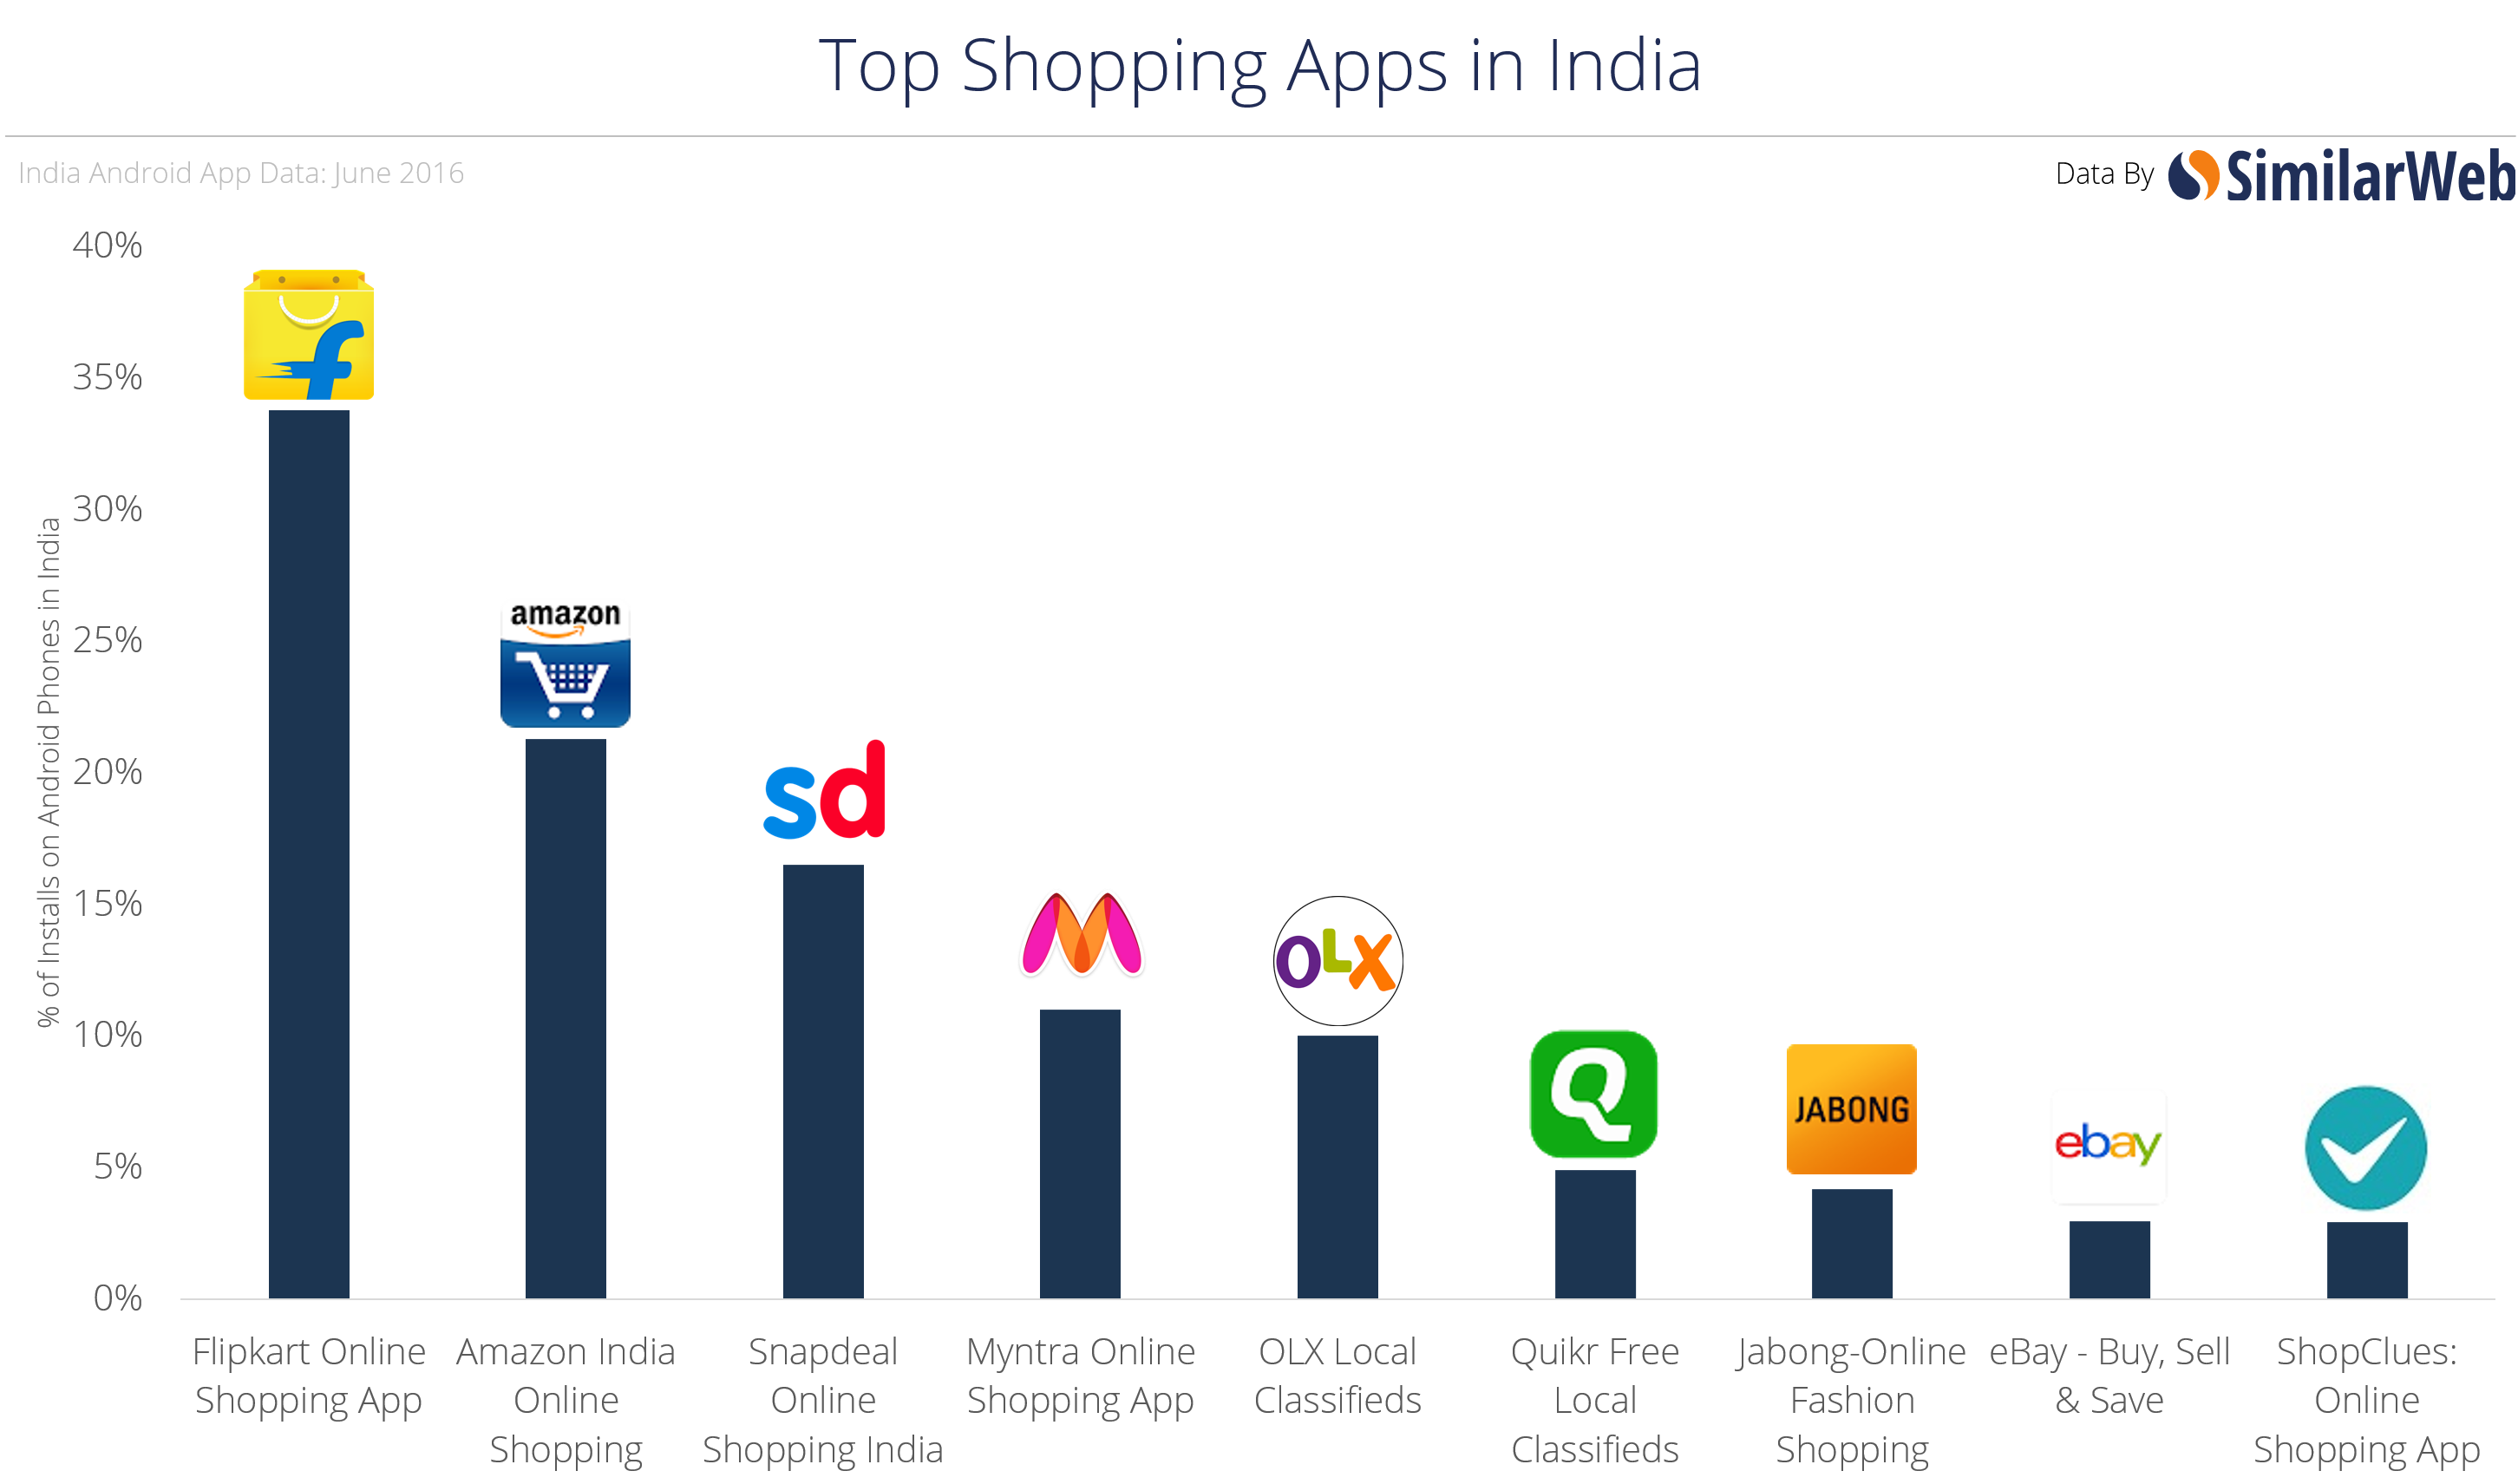 Shopping Online in India: Which Websites and Apps Are Most Popular?